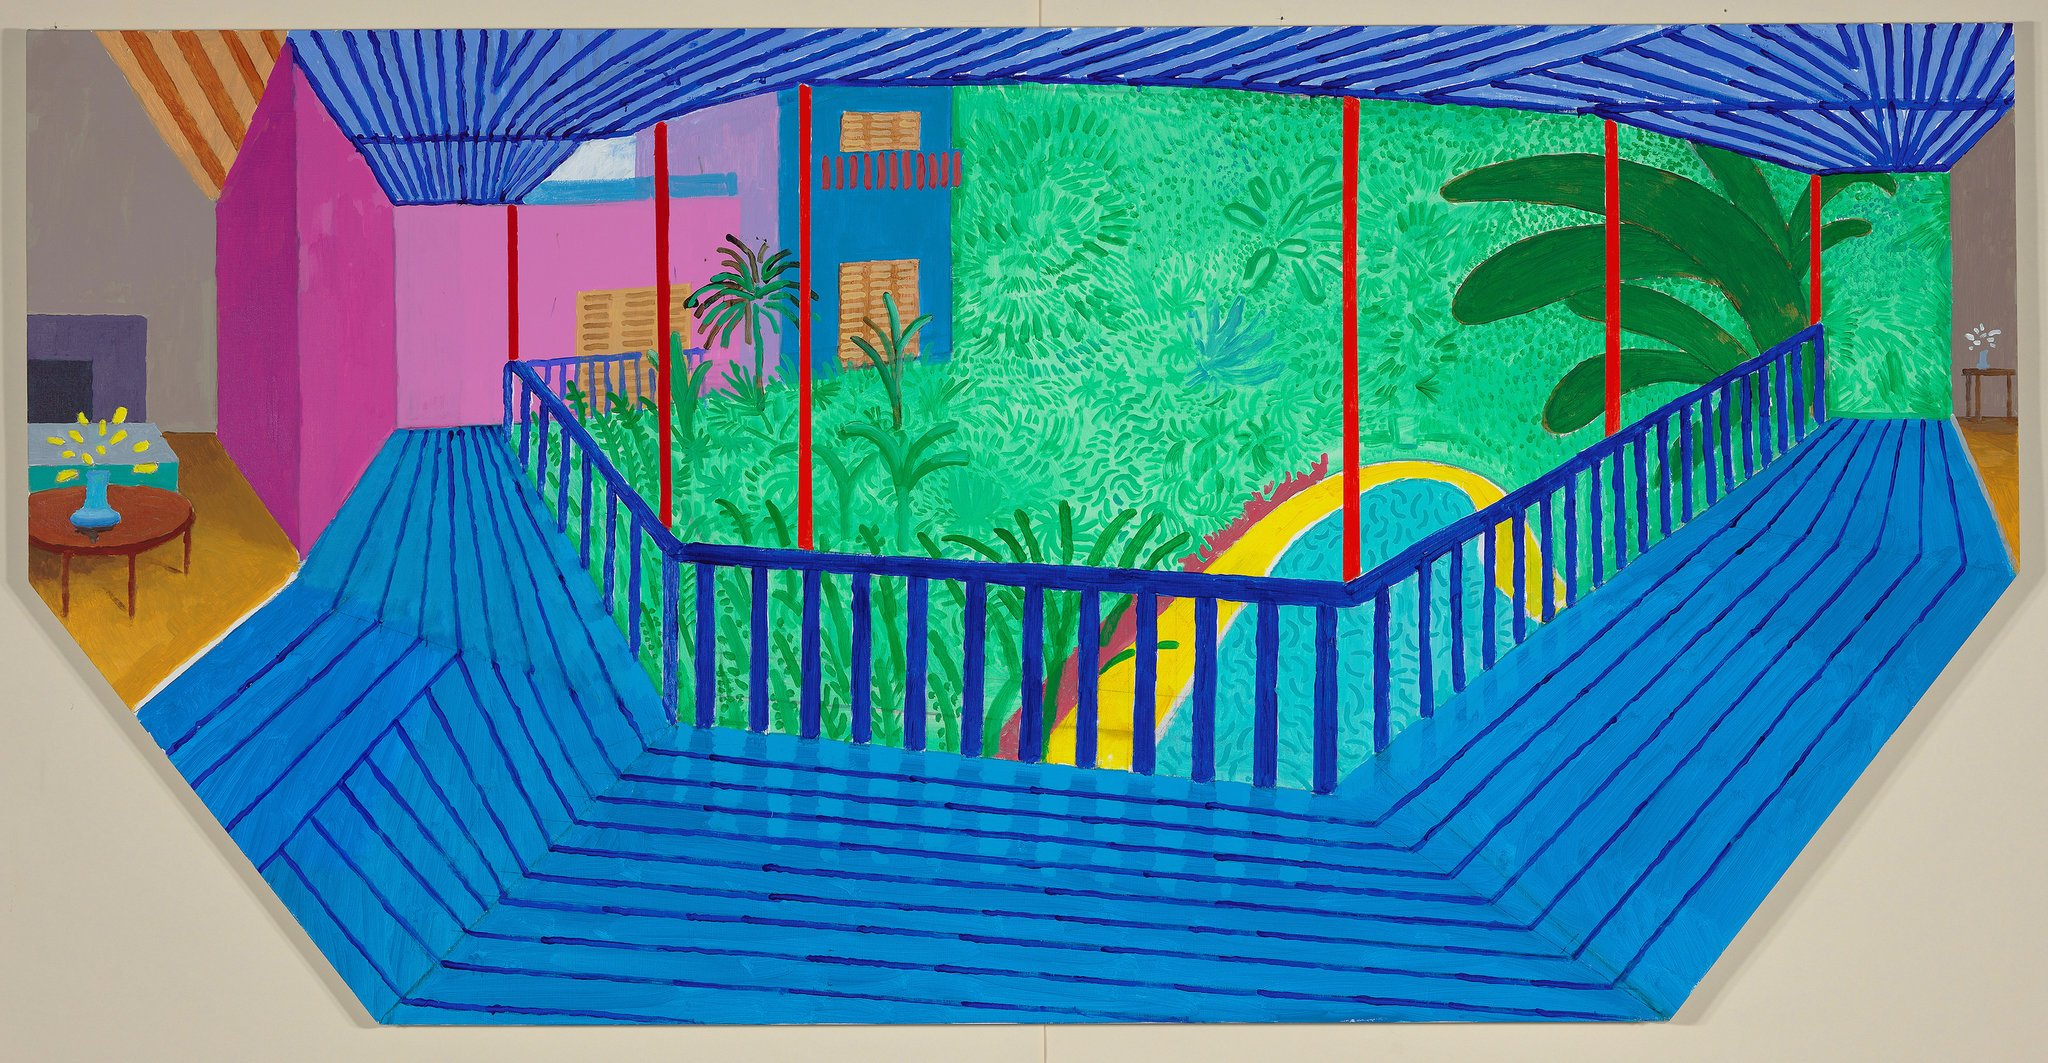 David hockney inspiration